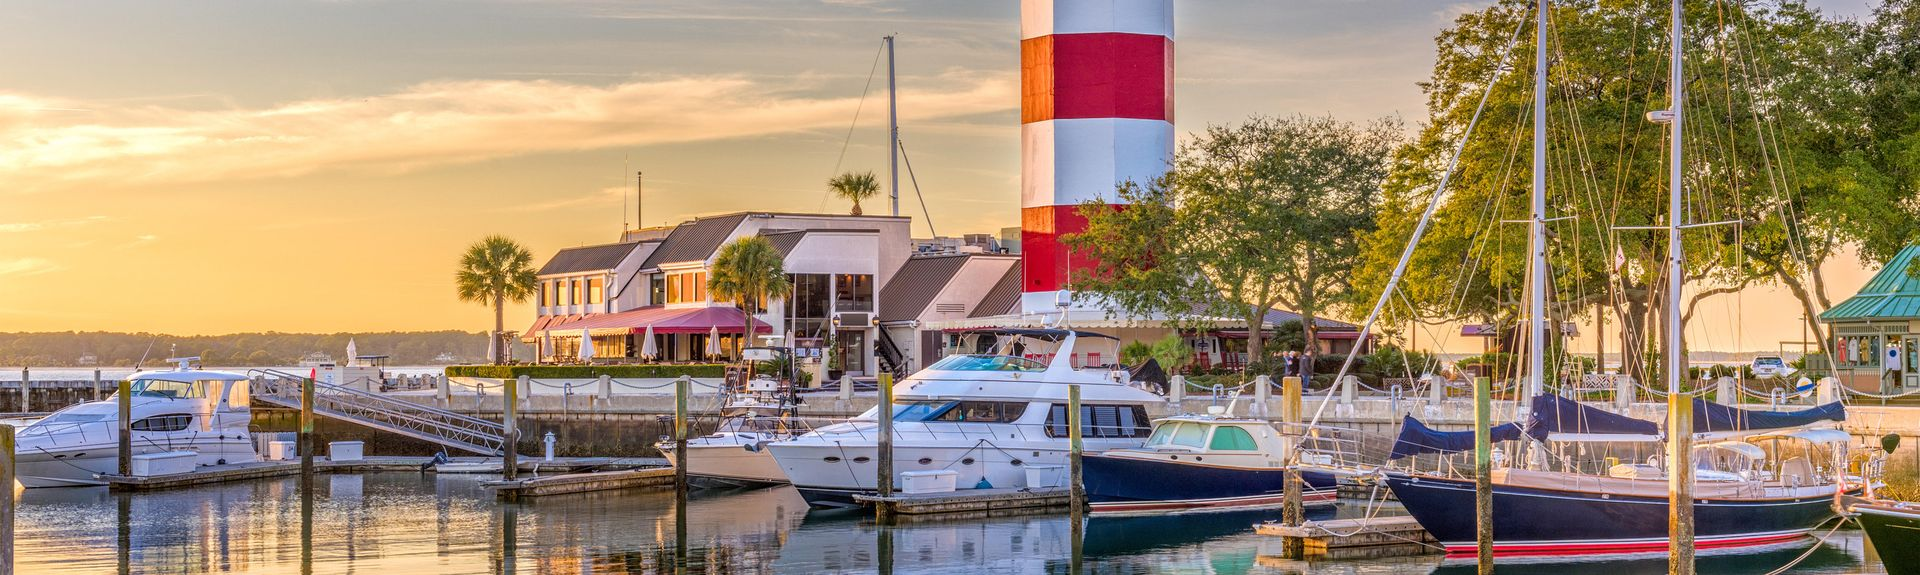 Hilton Head Island, South Carolina, United States of America